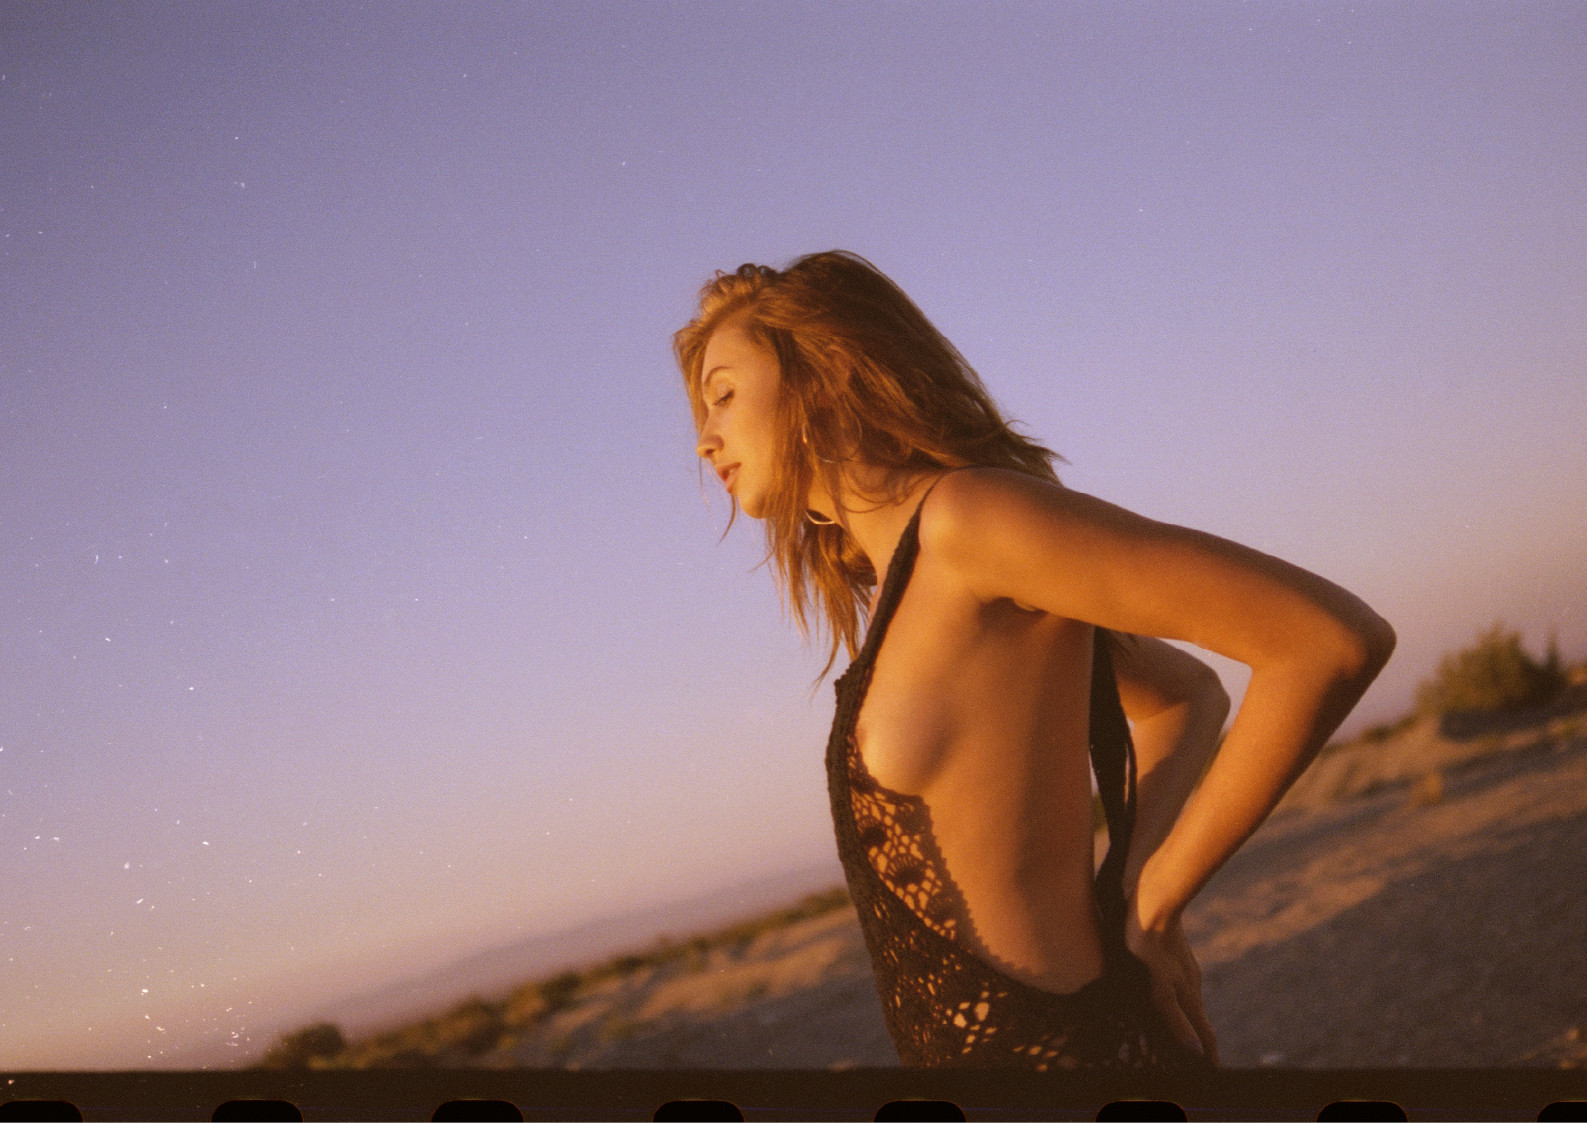 somewhere in the desert - model Cailin Russo